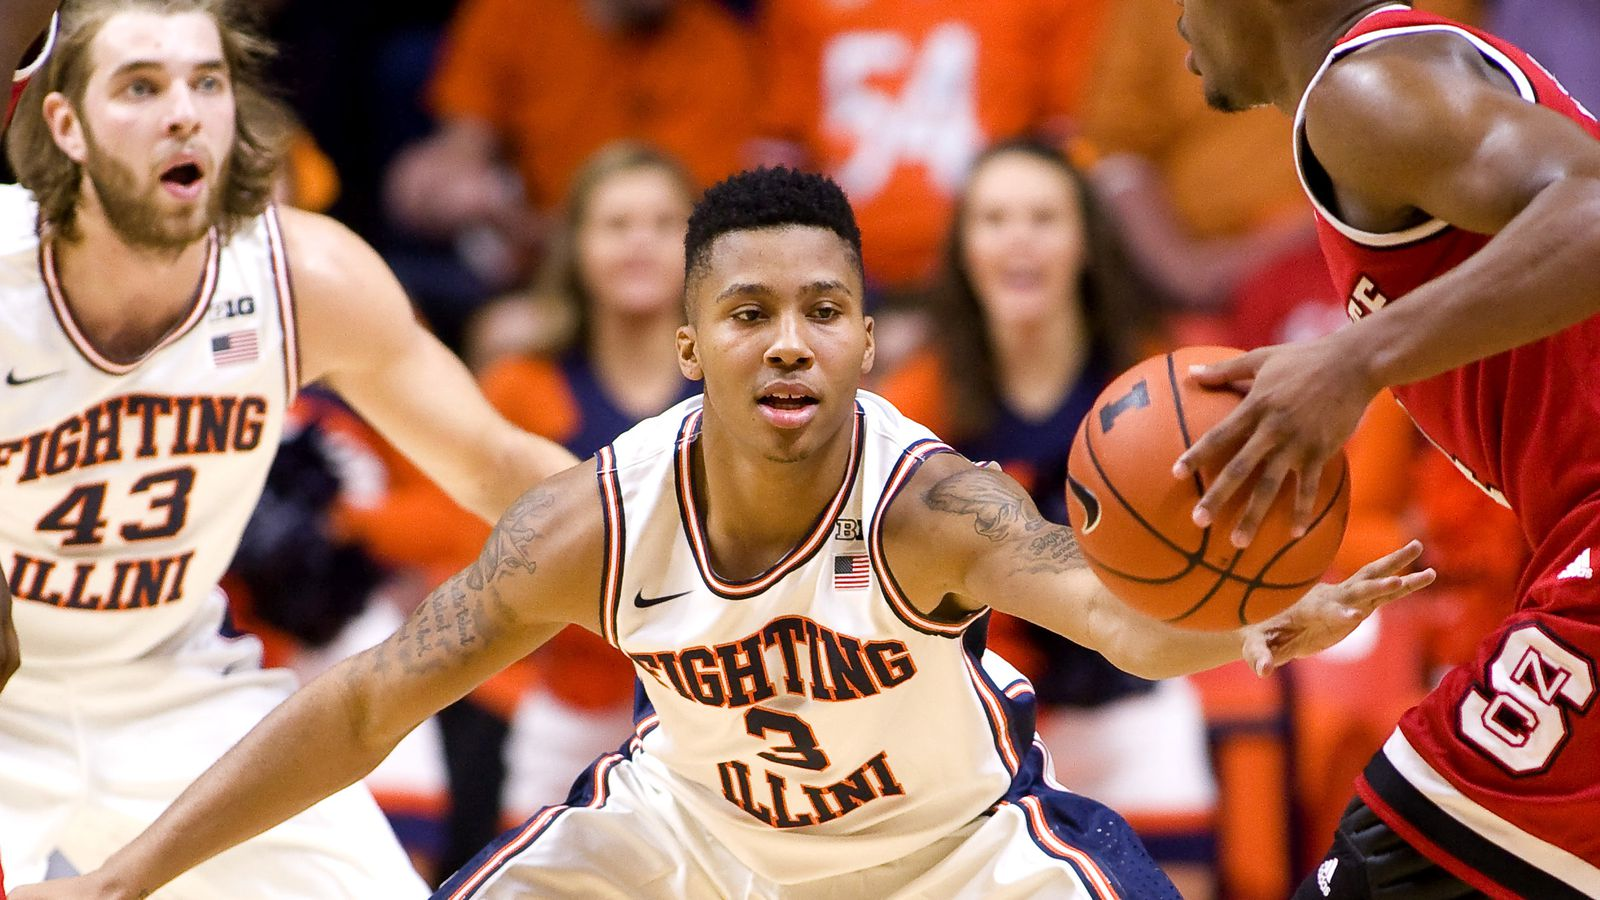 What is wrong with Illinois Basketball? - The Champaign Room